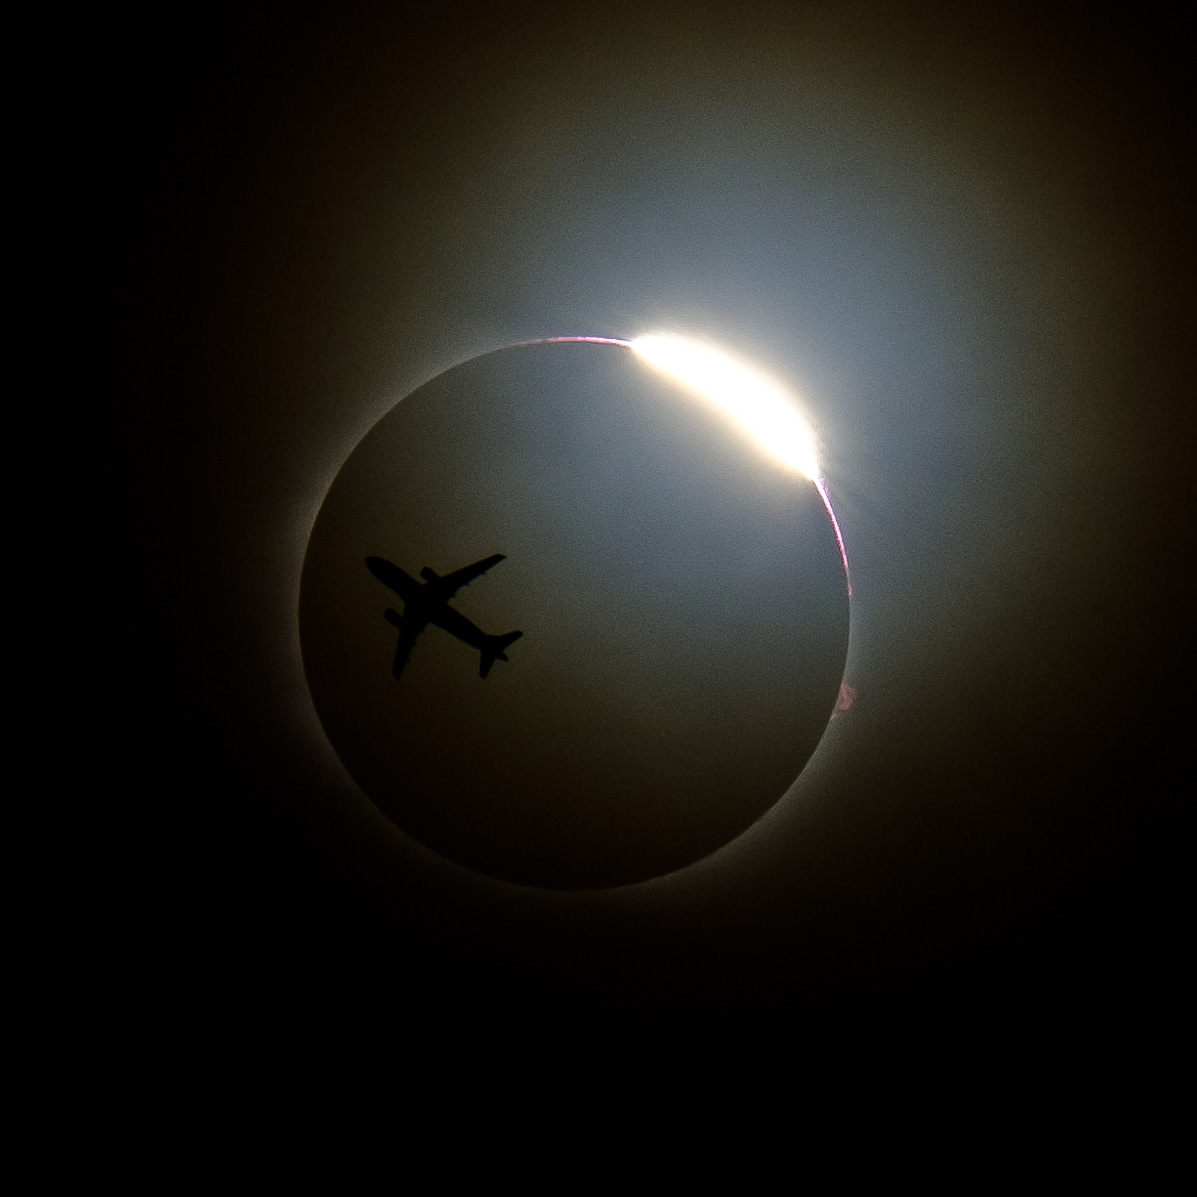 2017-08-21_solar_eclipse-021.jpg